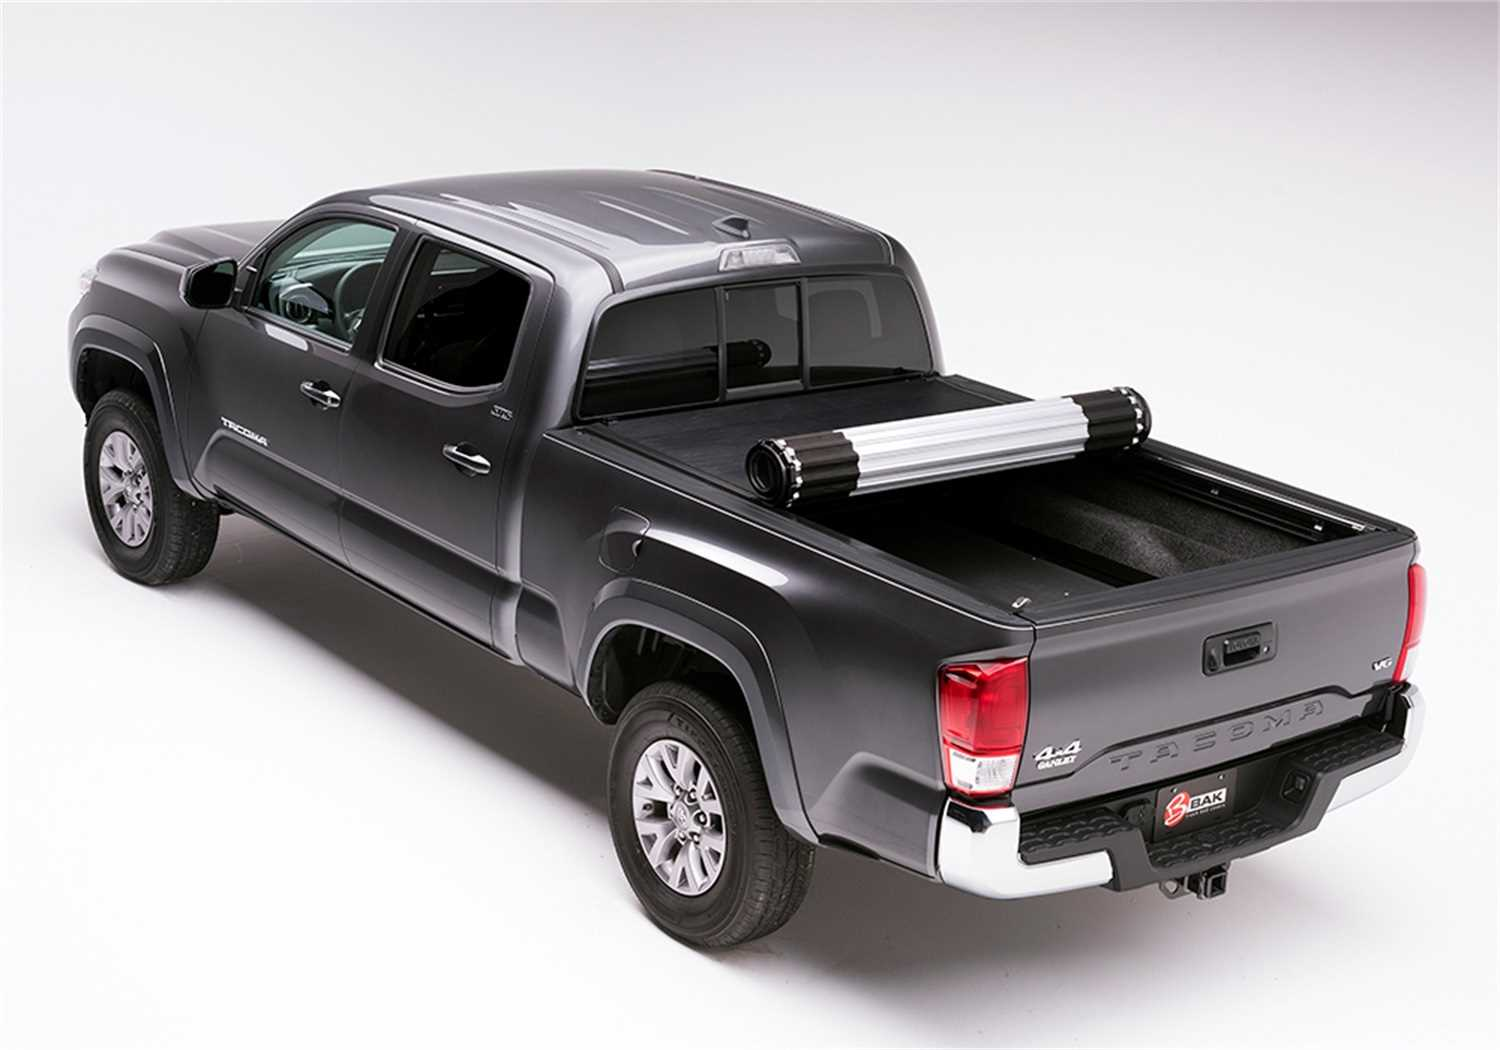 39426 Bak Industries Revolver X2 Hard Rolling Truck Bed Cover